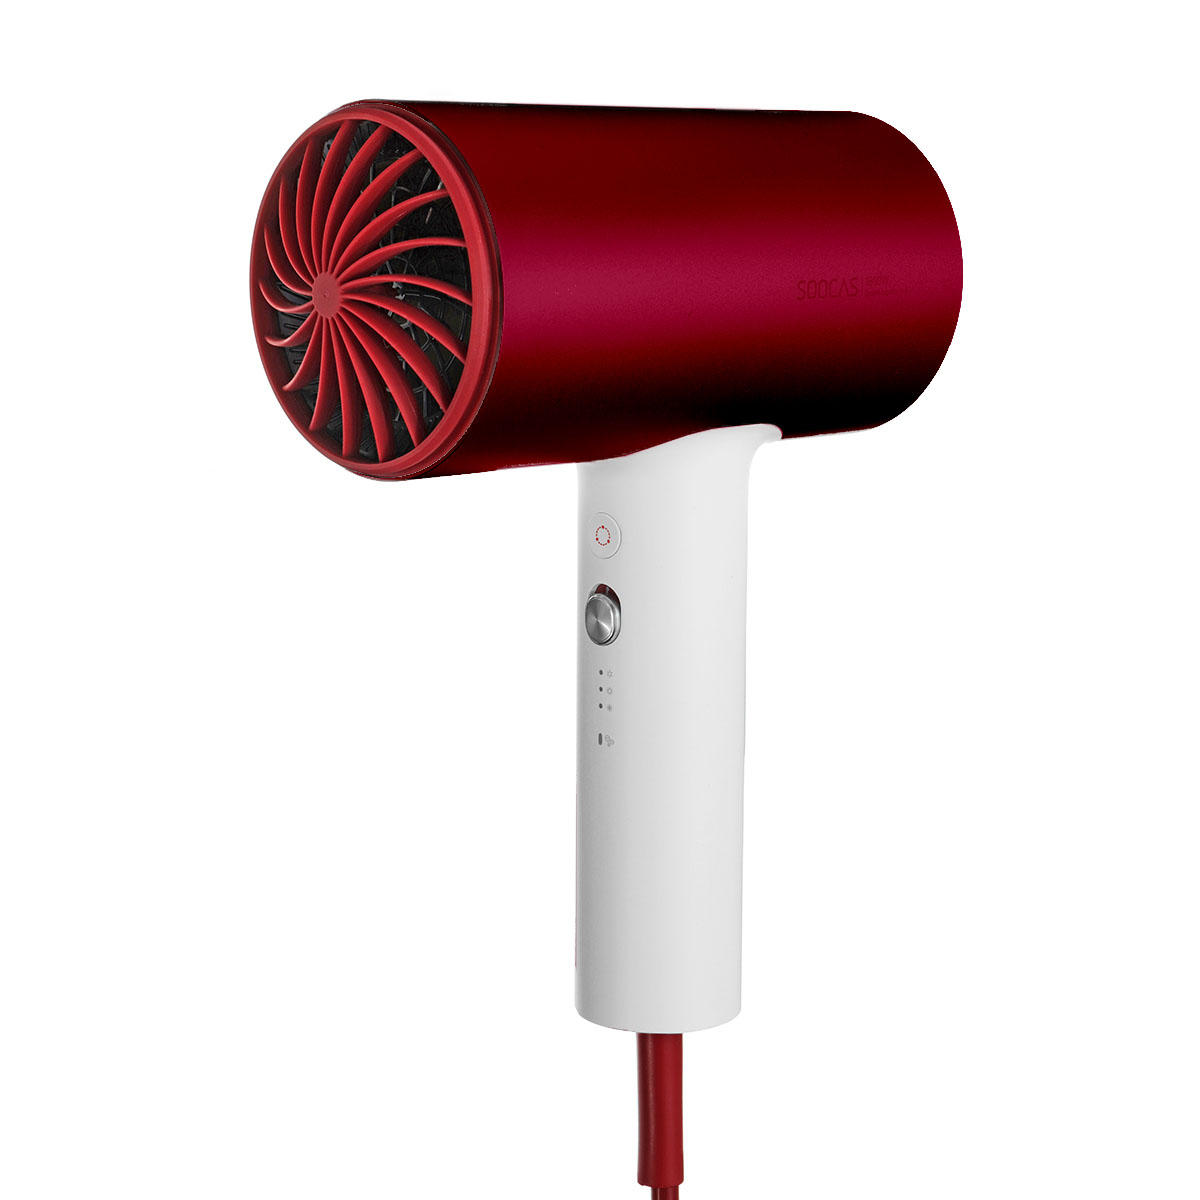 Xiaomi SOOCAS H3S Anion Hair Dryer Negative Ion 360-degree Rotatable Red Quick Dry Hair Dryer